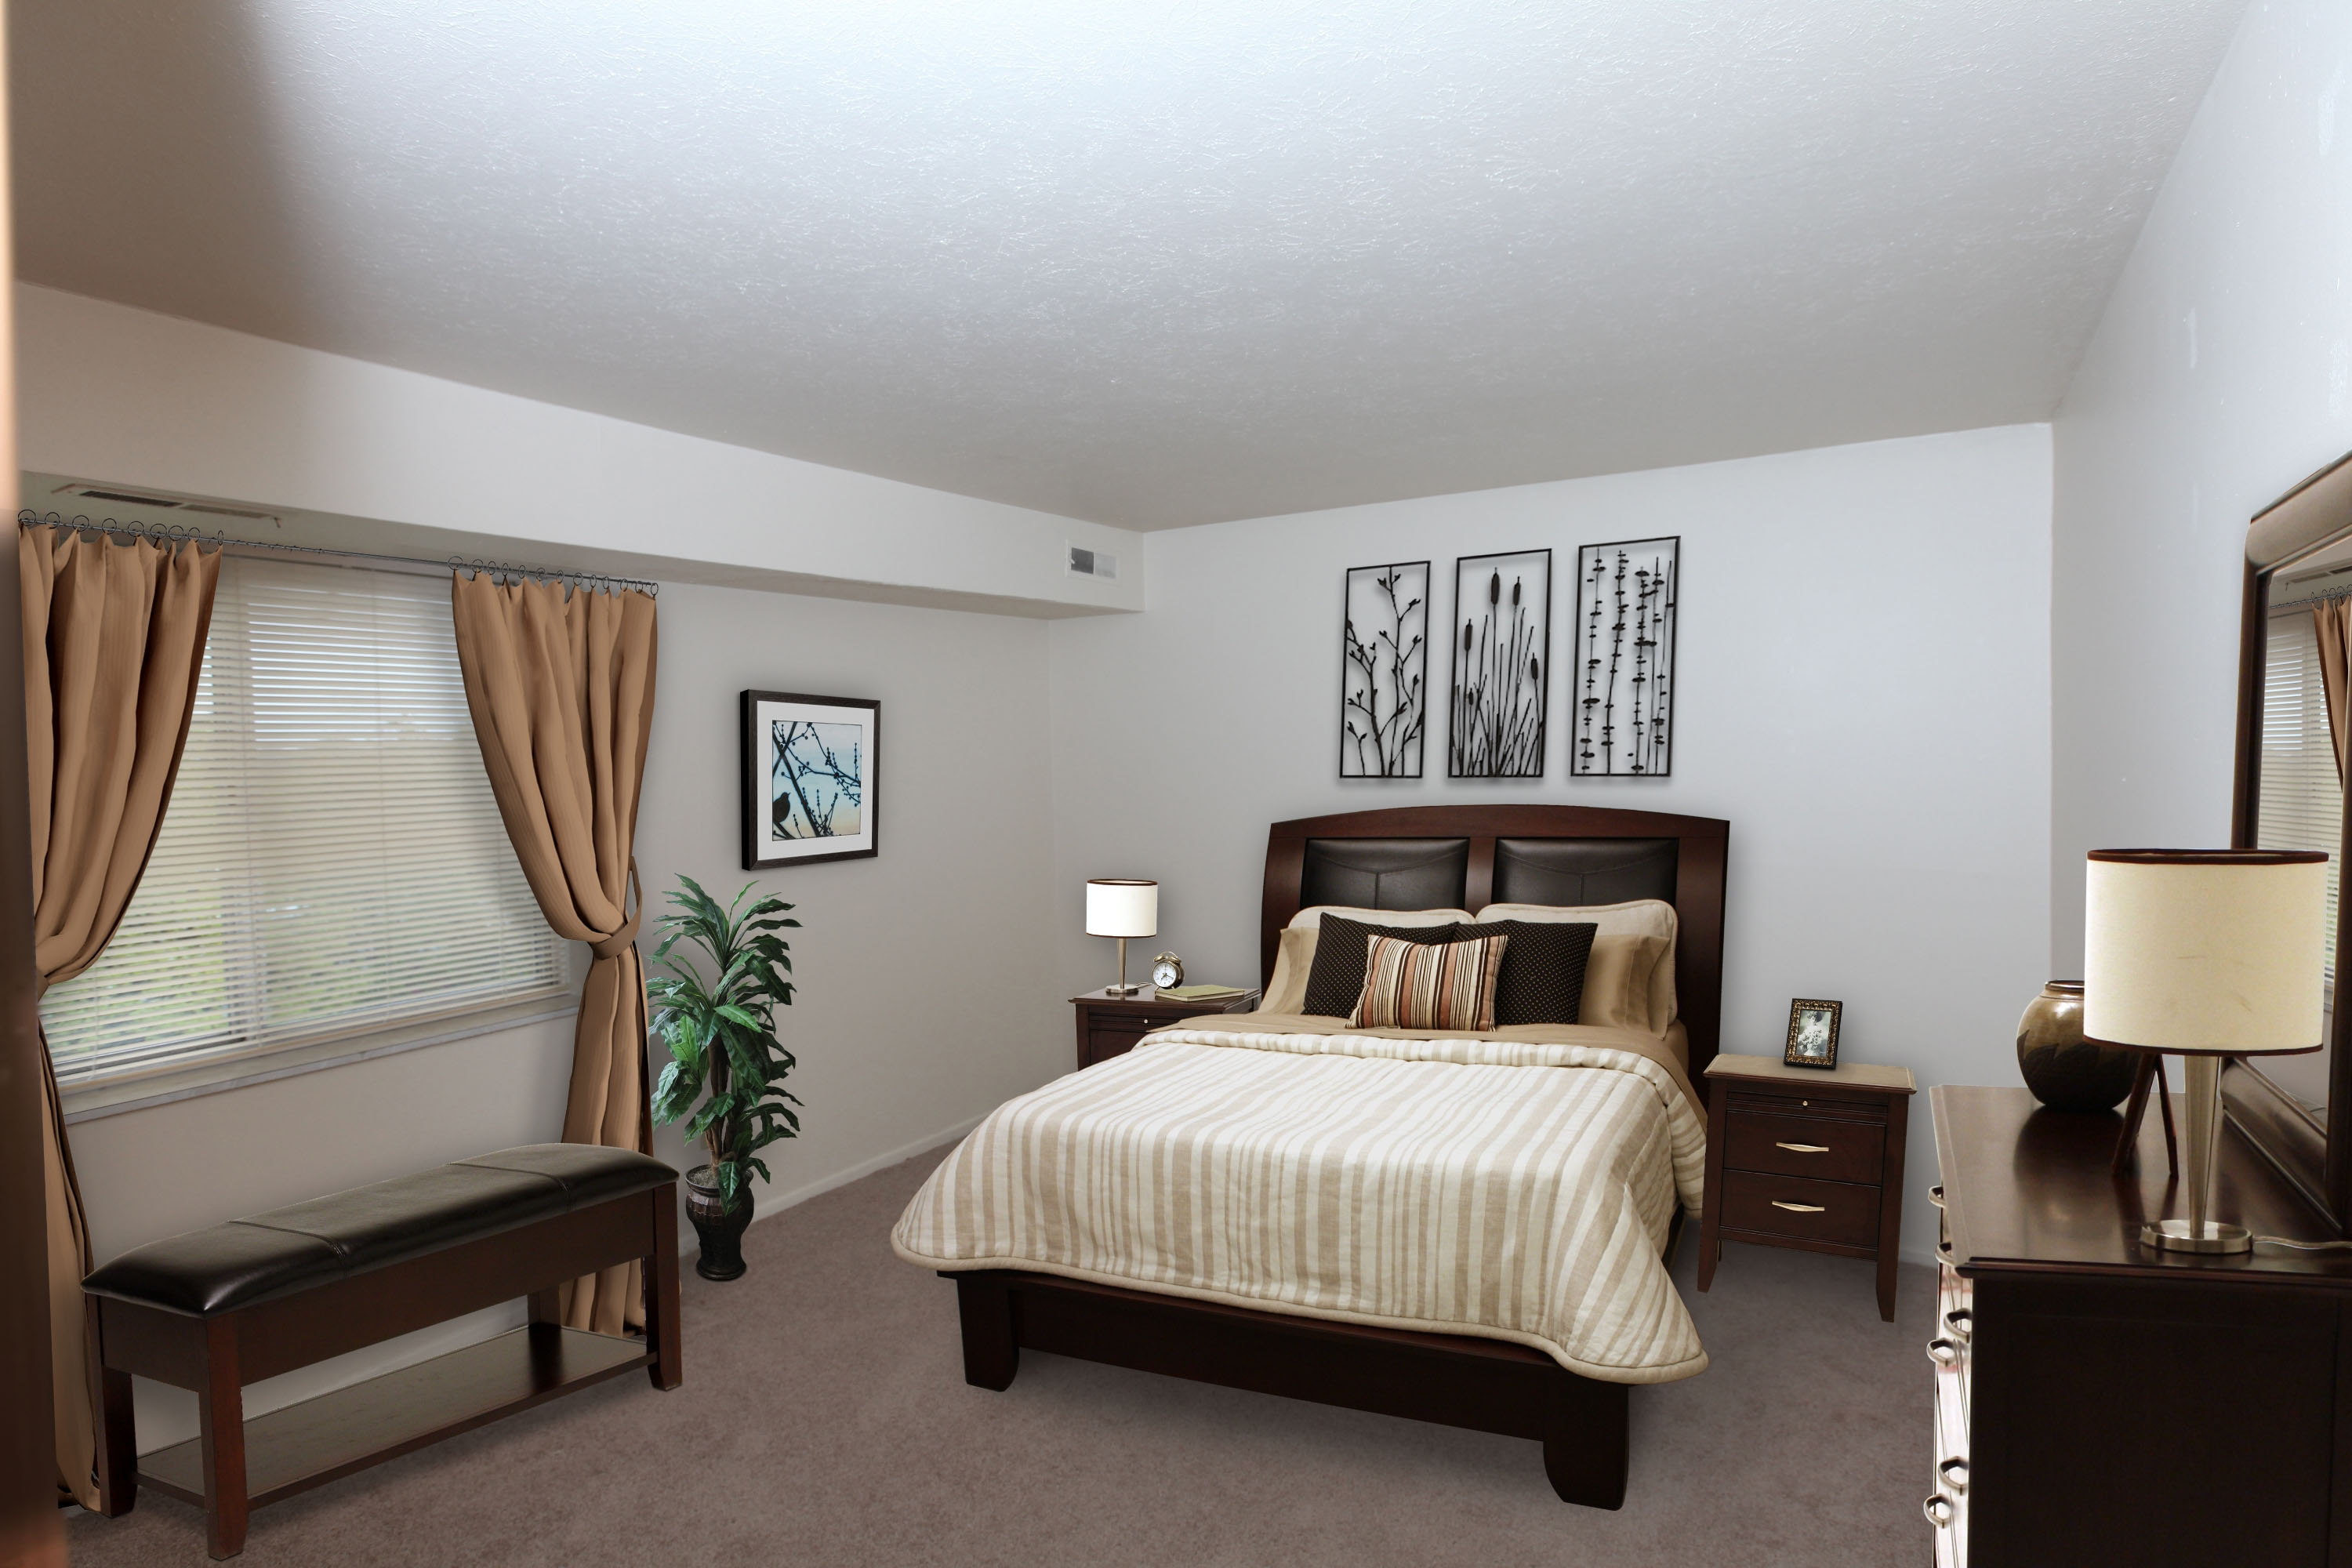 2C Bedroom #2 Furnished at the Greenridge on Euclid Apartments in Euclid, OH